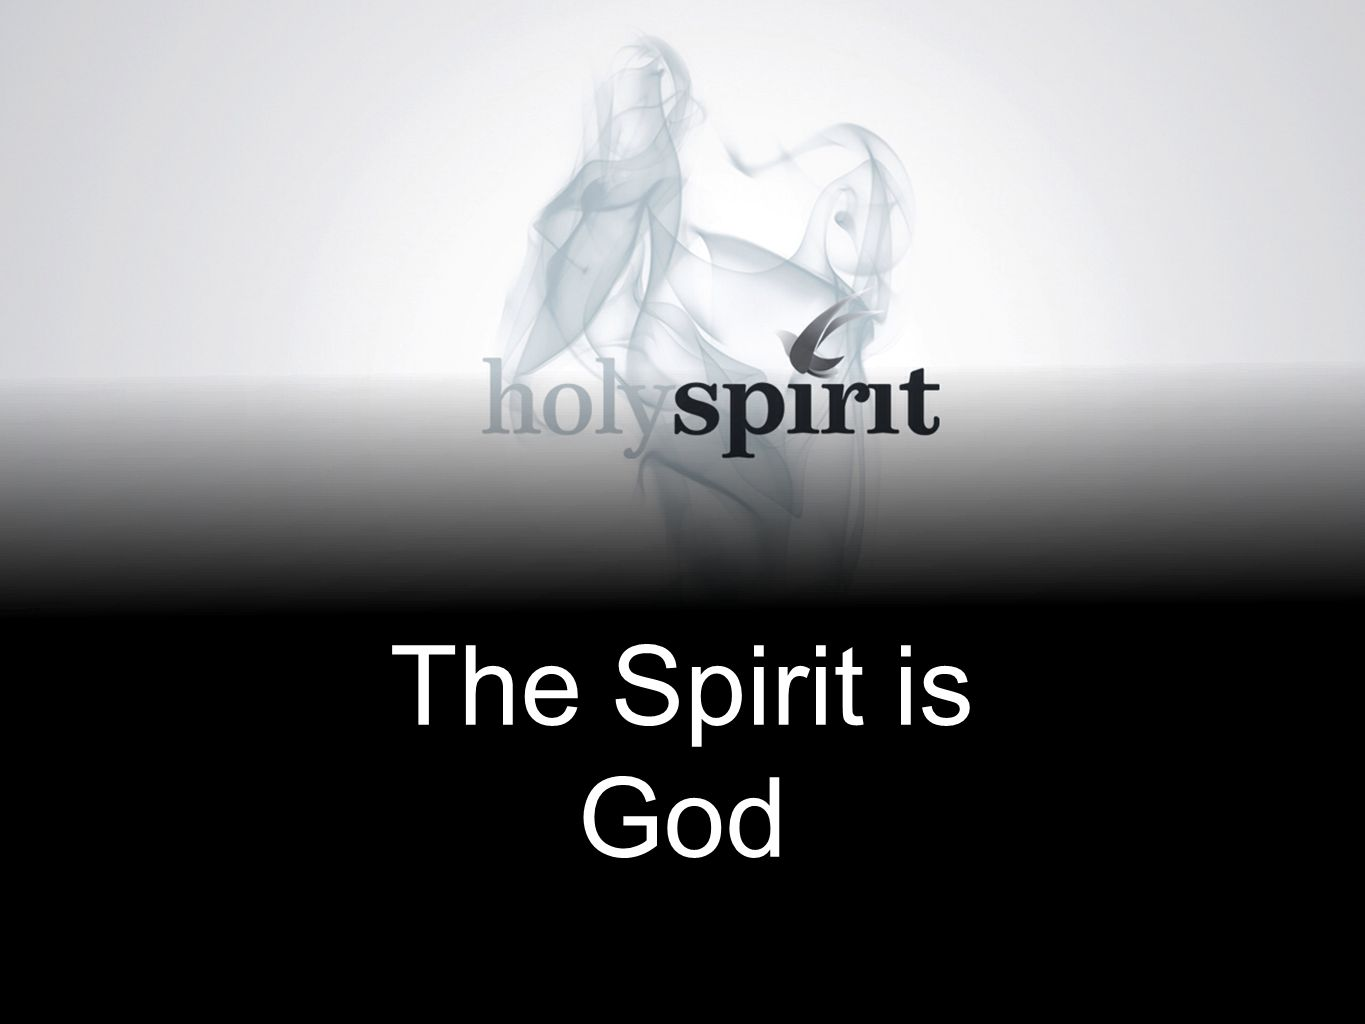 The Spirit is God